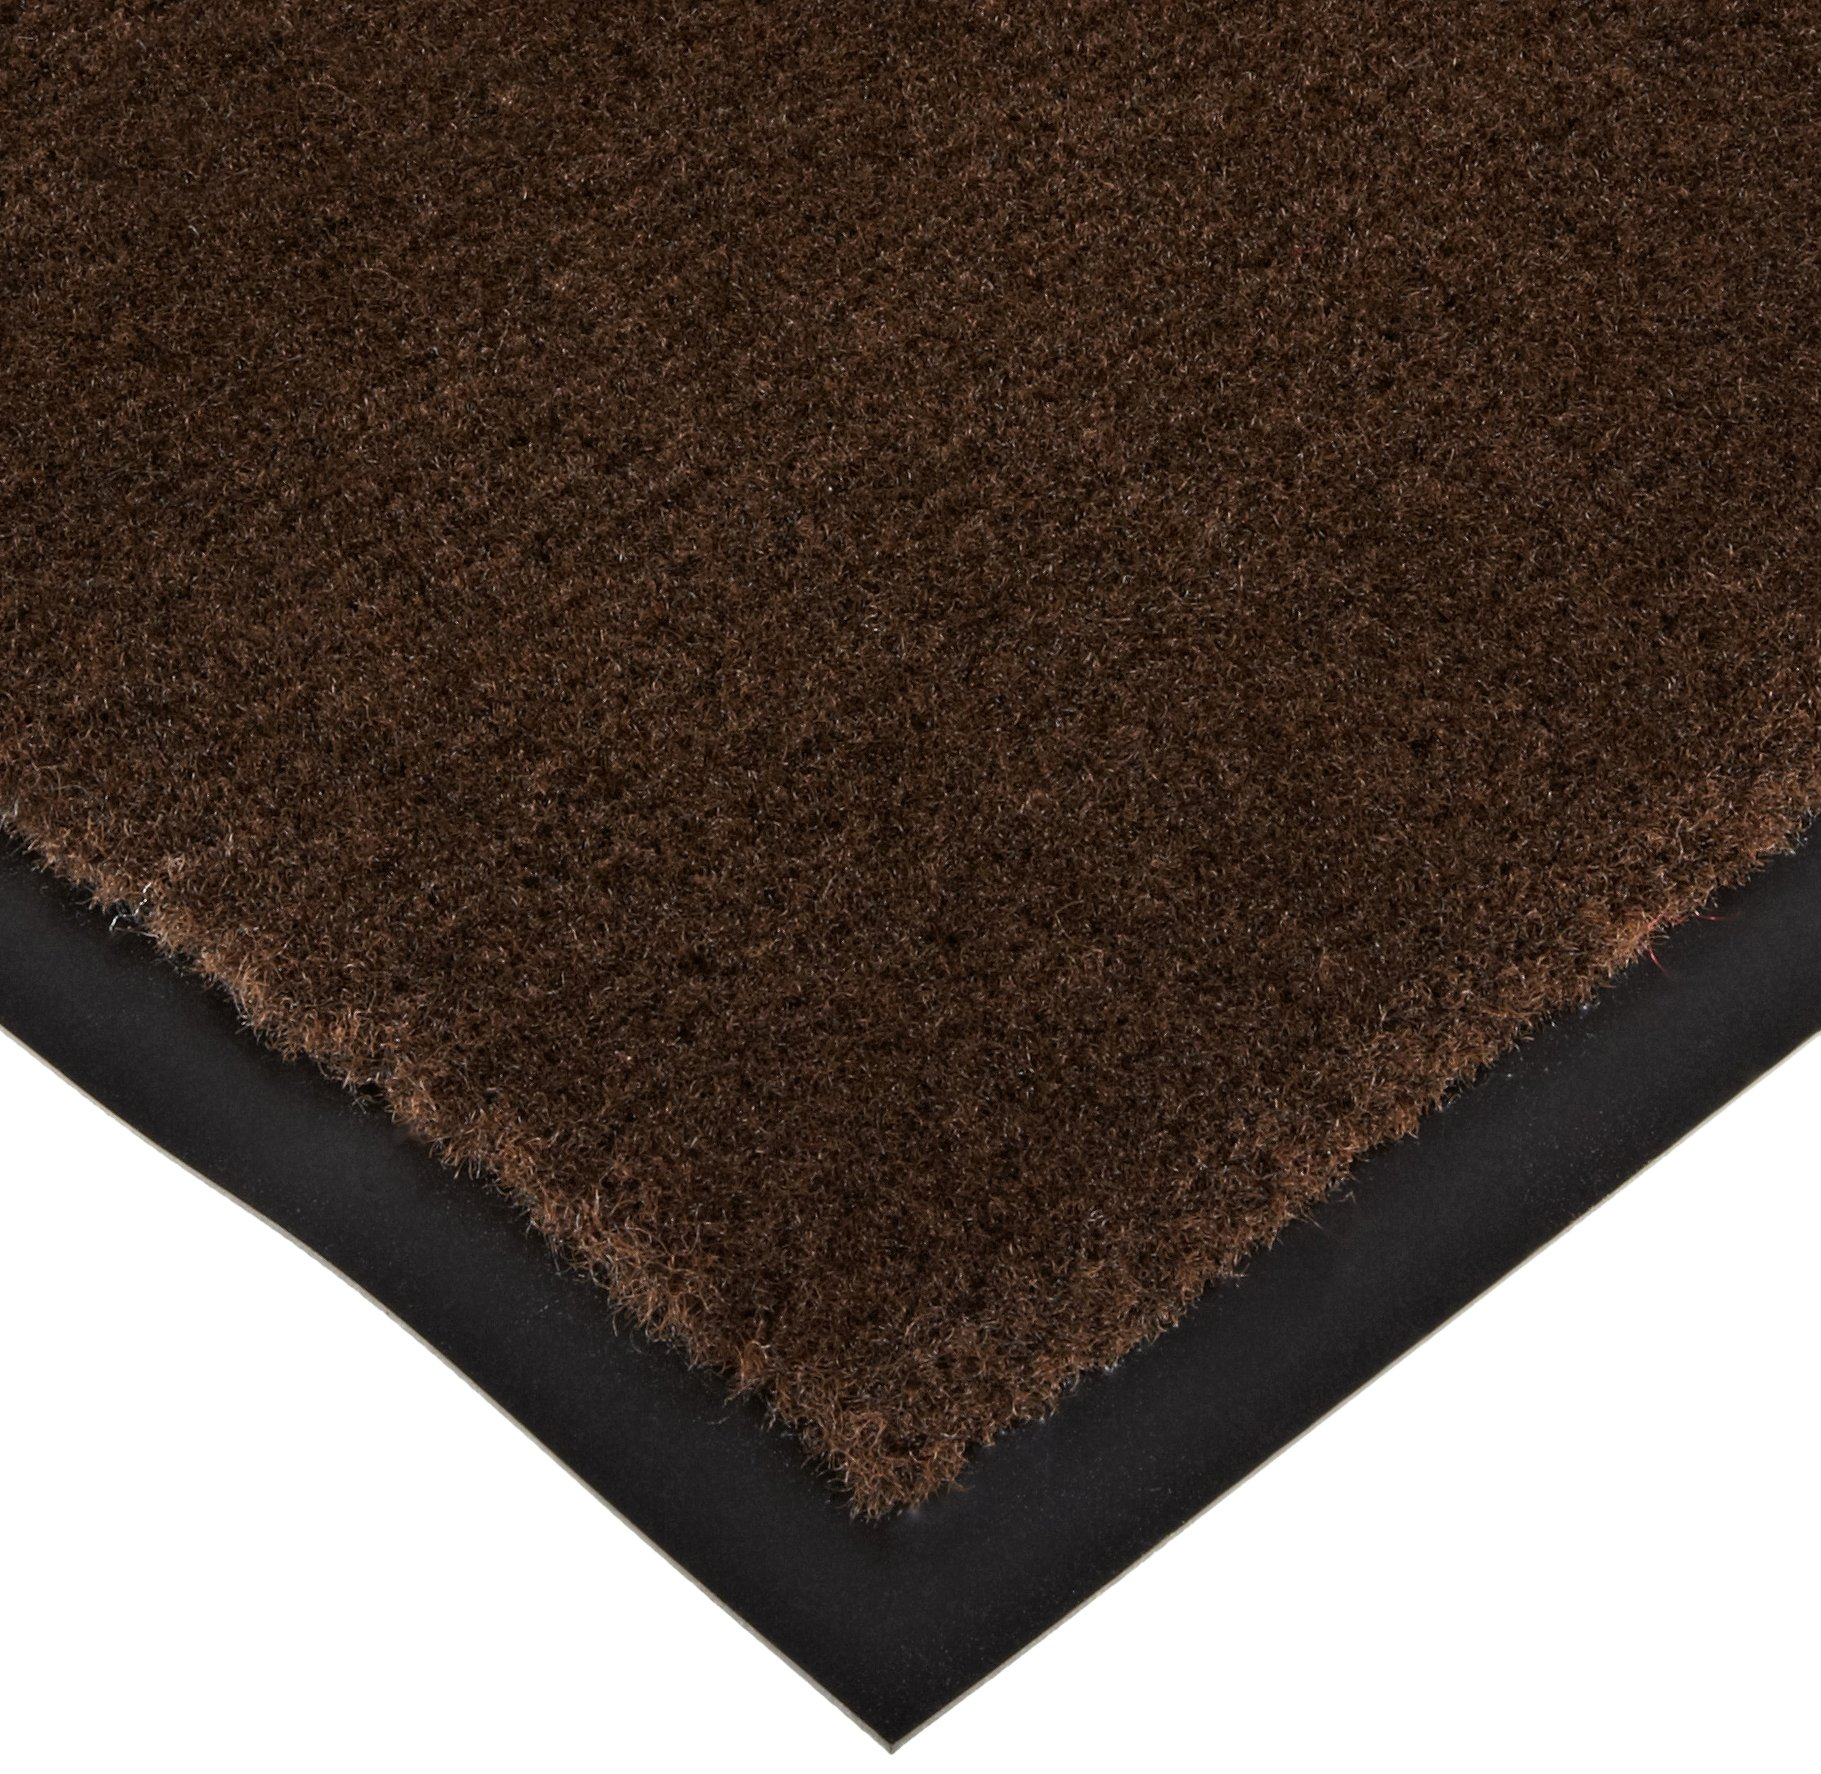 Notrax 130 Sabre Decalon Entrance Mat, for Entranceways and Light to Medium Traffic Areas, 3' Width x 5' Length x 5/16'' Thickness, Brown